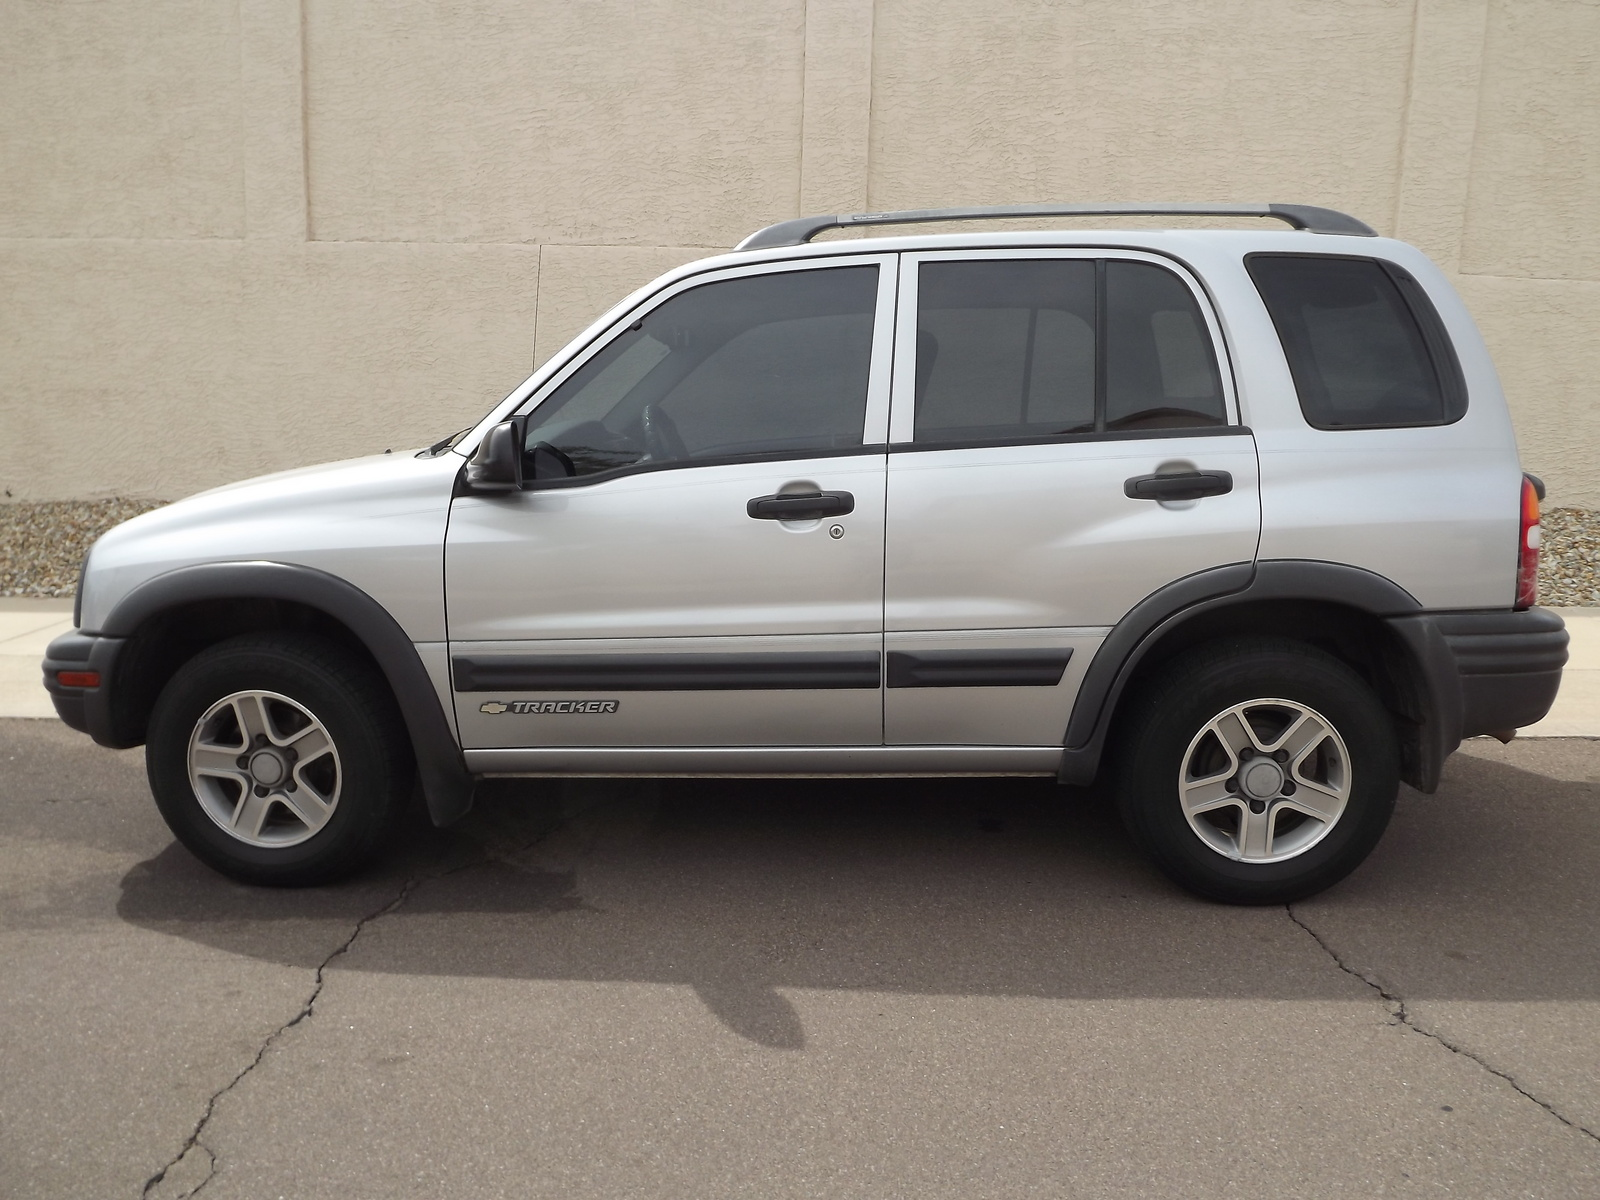 Chevrolet Tracker 1.8 2007 photo - 6